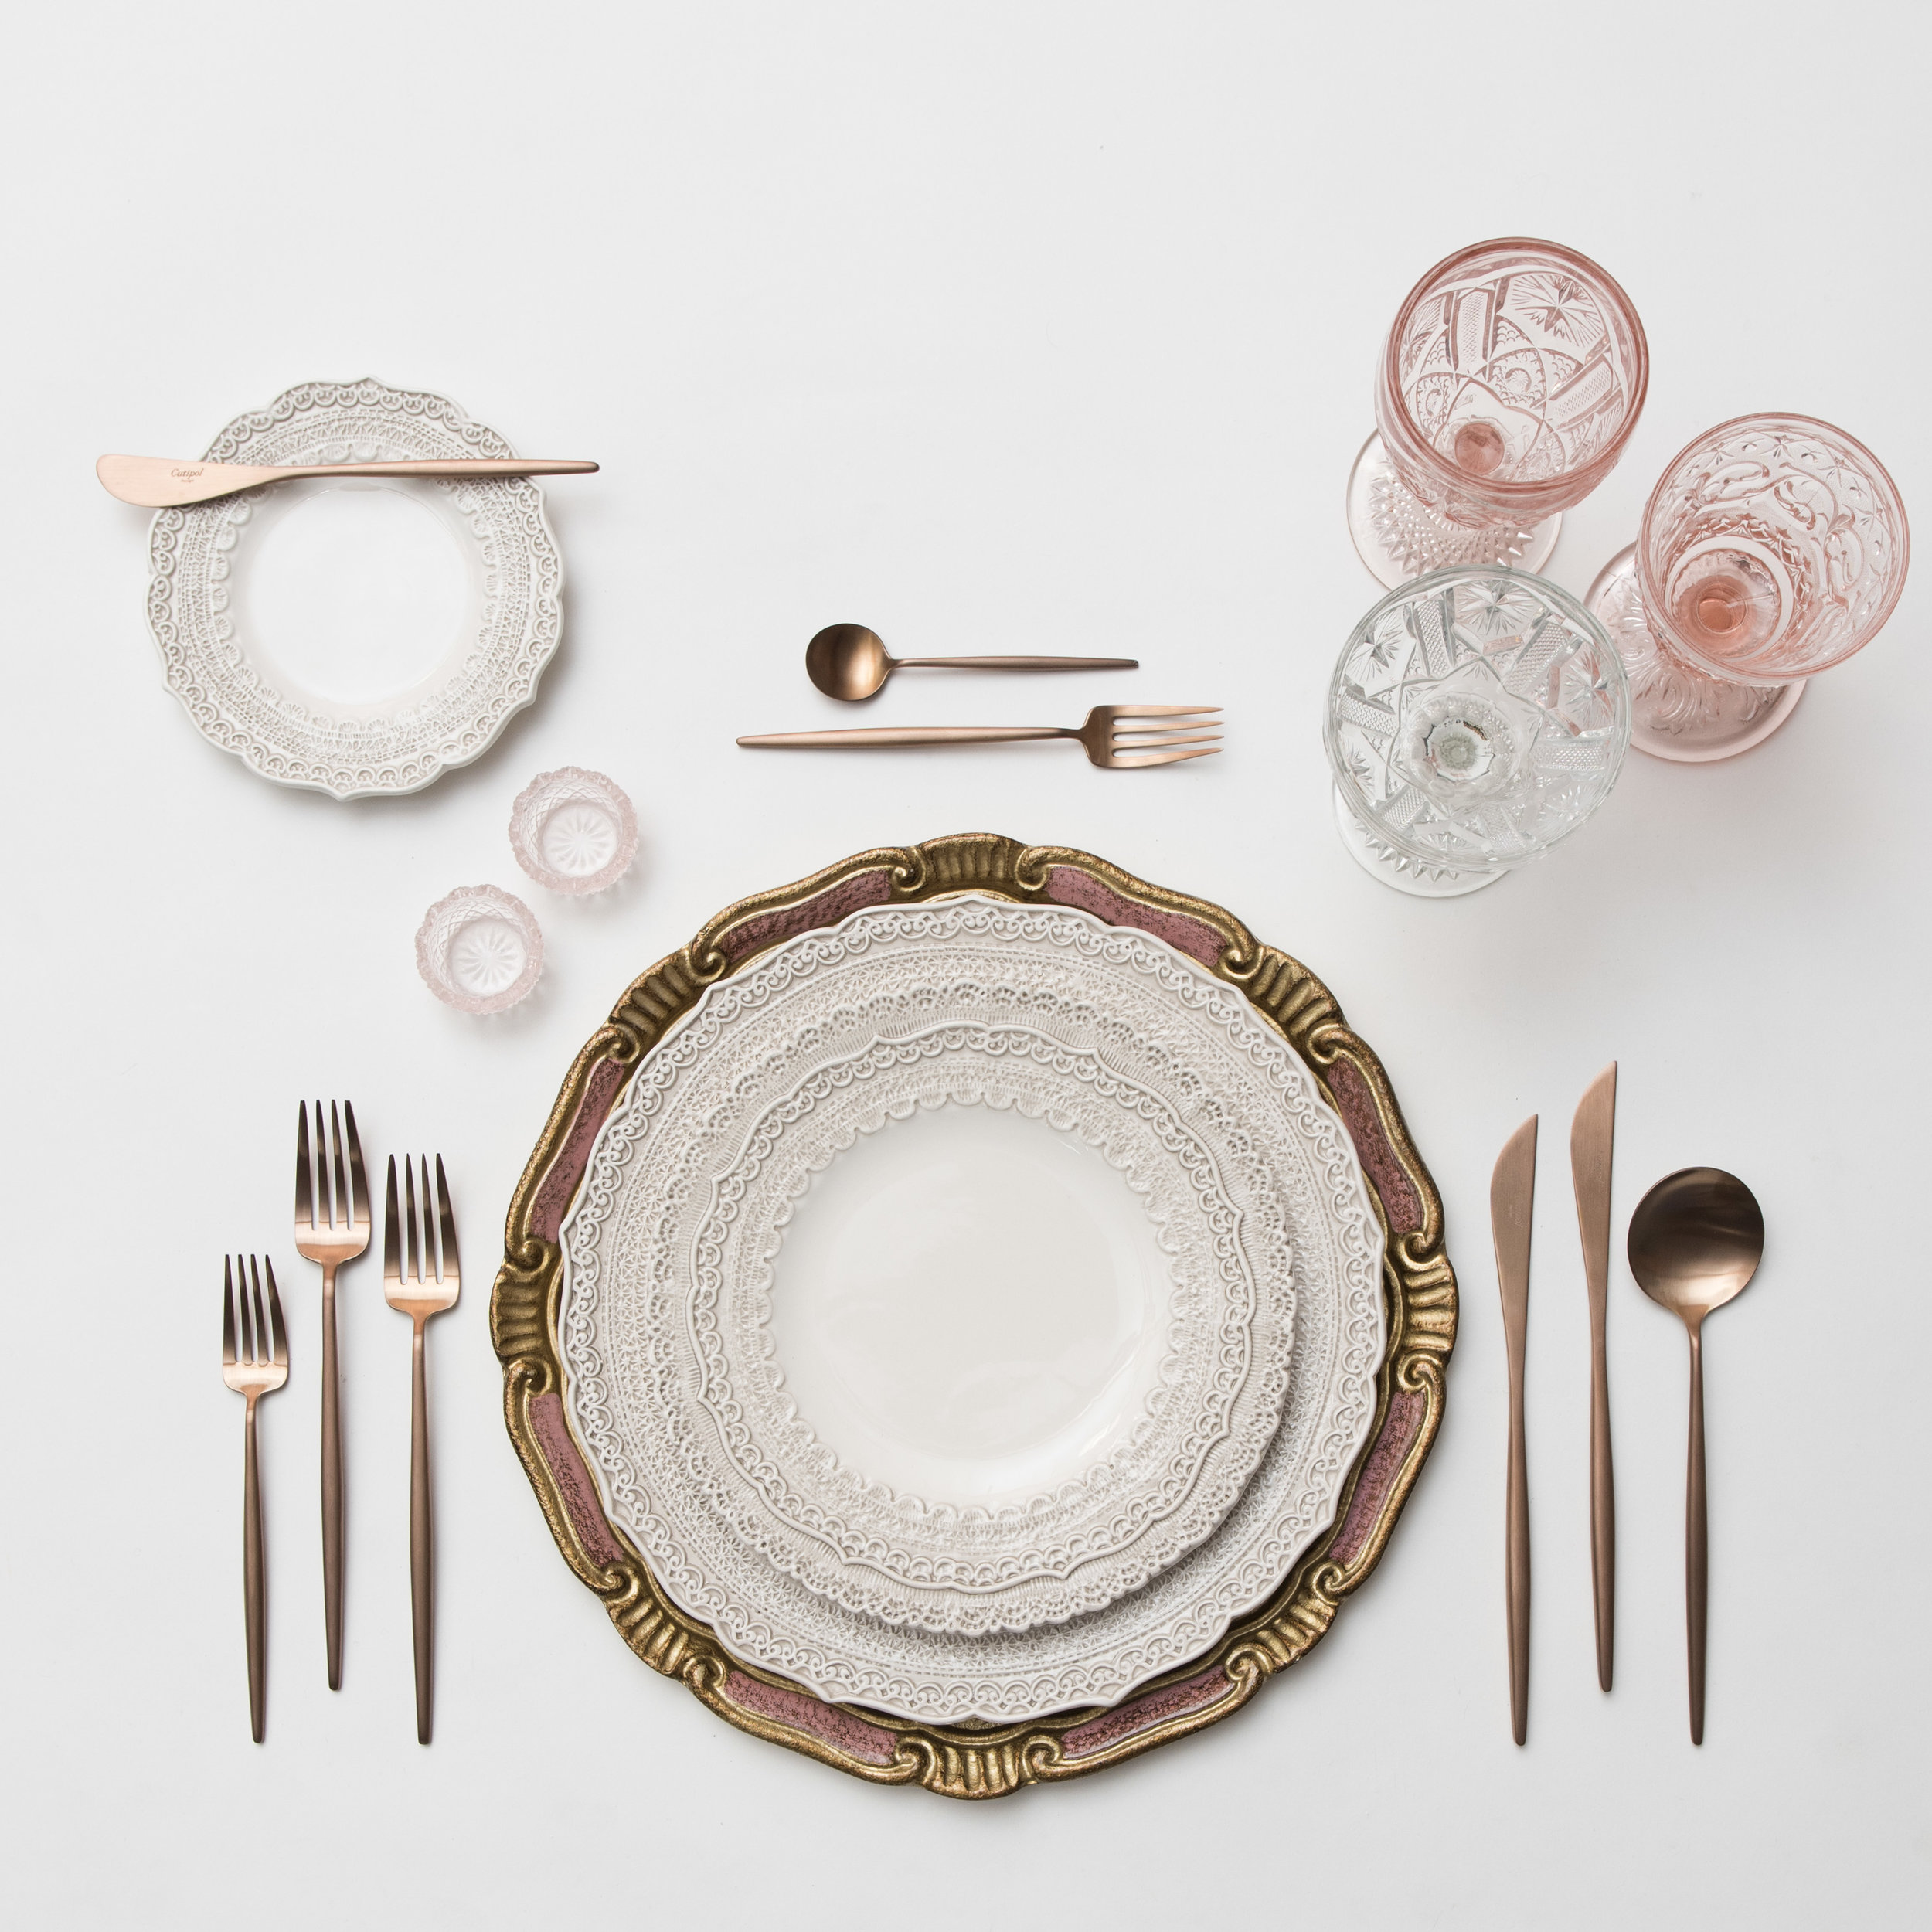 RENT: Florentine Chargers in Rose/Gold + Lace Dinnerware in White + Moon Flatware in Brushed Rose Gold + Pink Vintage Goblets + Vintage Cut Crystal Goblets + Vintage Champagne Coupes + Pink Crystal Salt Cellars  SHOP: Moon Flatware in Brushed Rose Gold